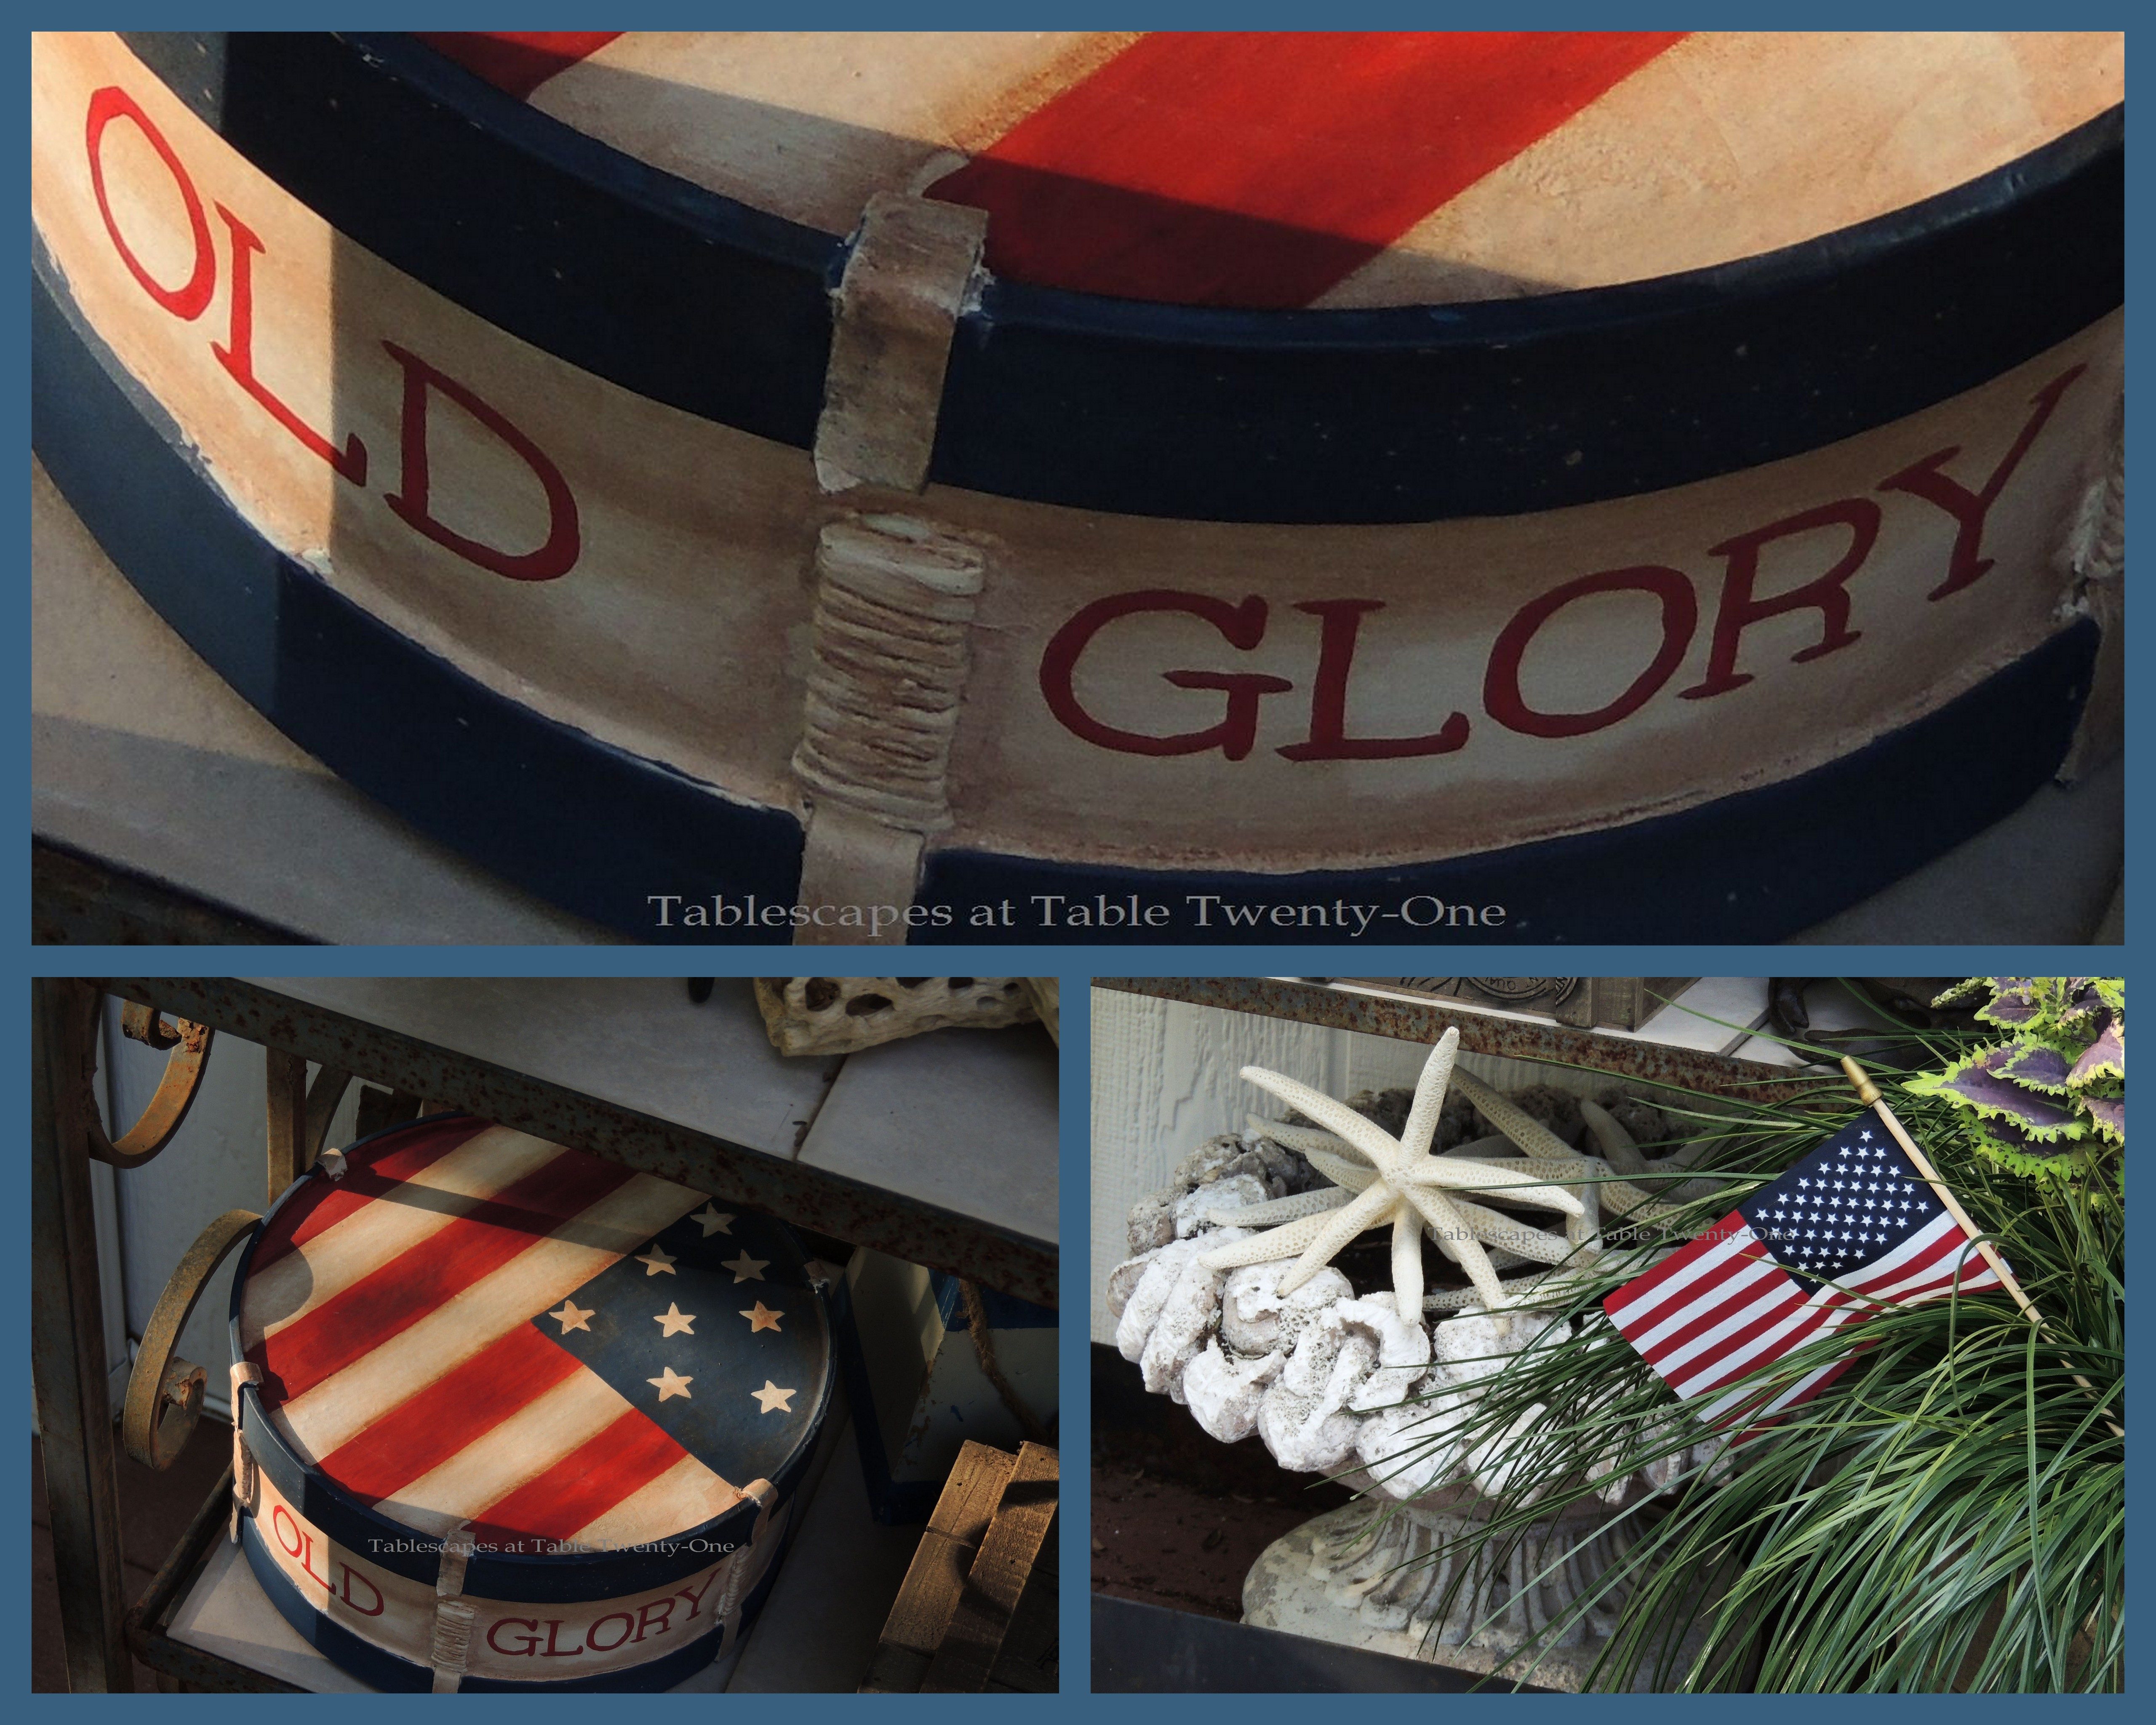 Tablescapes at Table Twenty-One, www.tabletwentyone.wordpress.com, 4th of July Coastal Style: Old Glory wooden box, starfish in planter collage